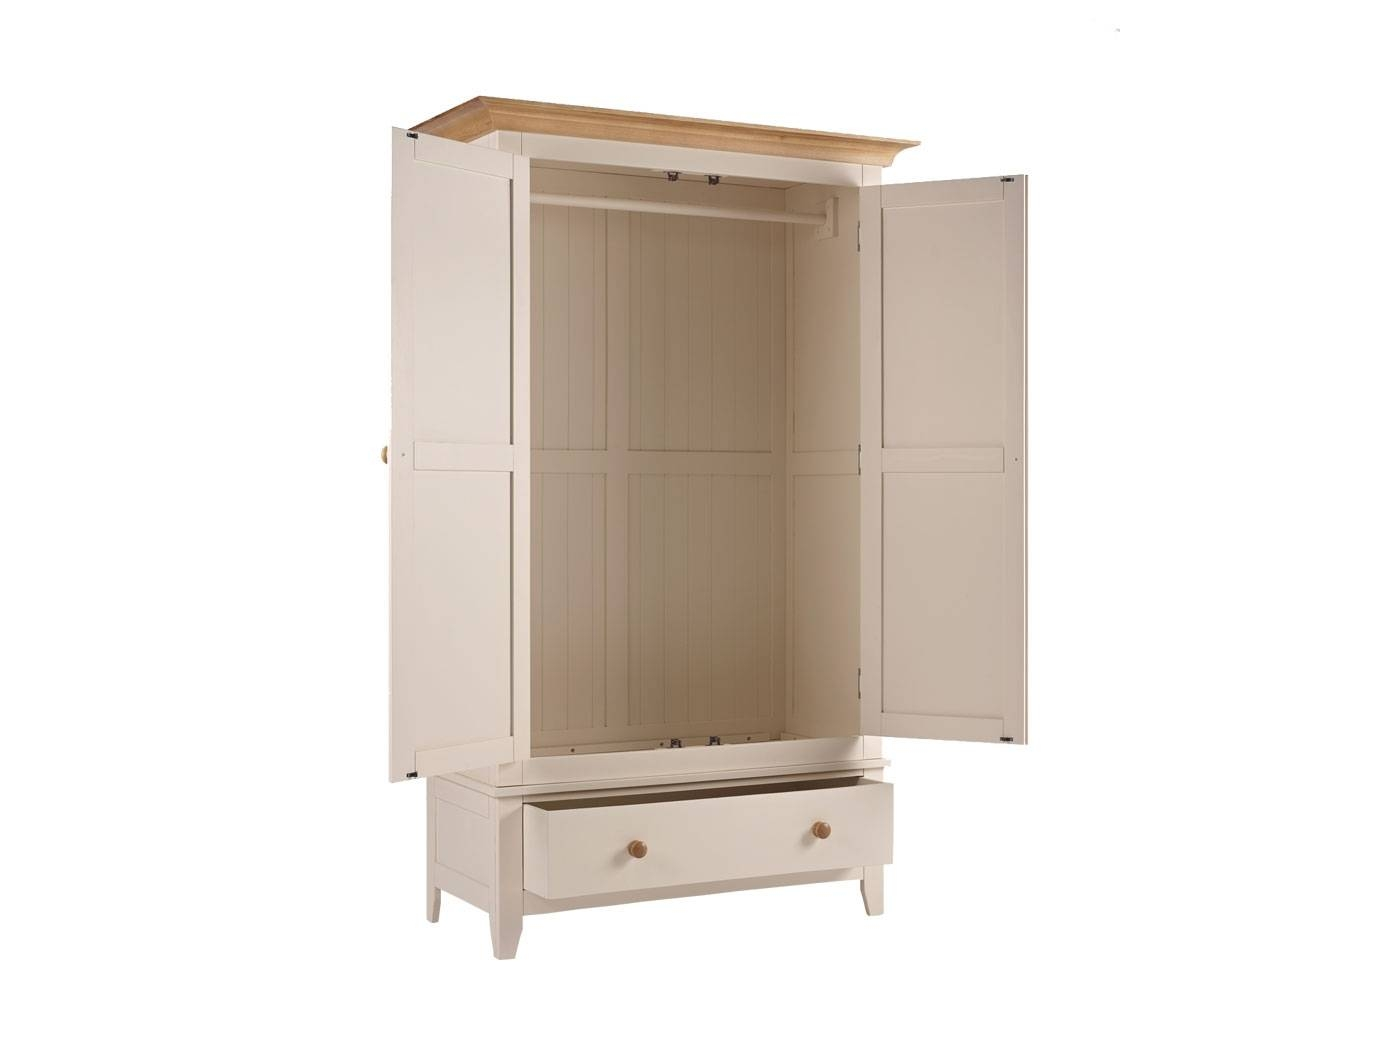 Camden Wardrobe 2 Door Drawer - Wardrobes - Storage - Beds & Bedroom regarding Camden Wardrobes (Image 6 of 15)